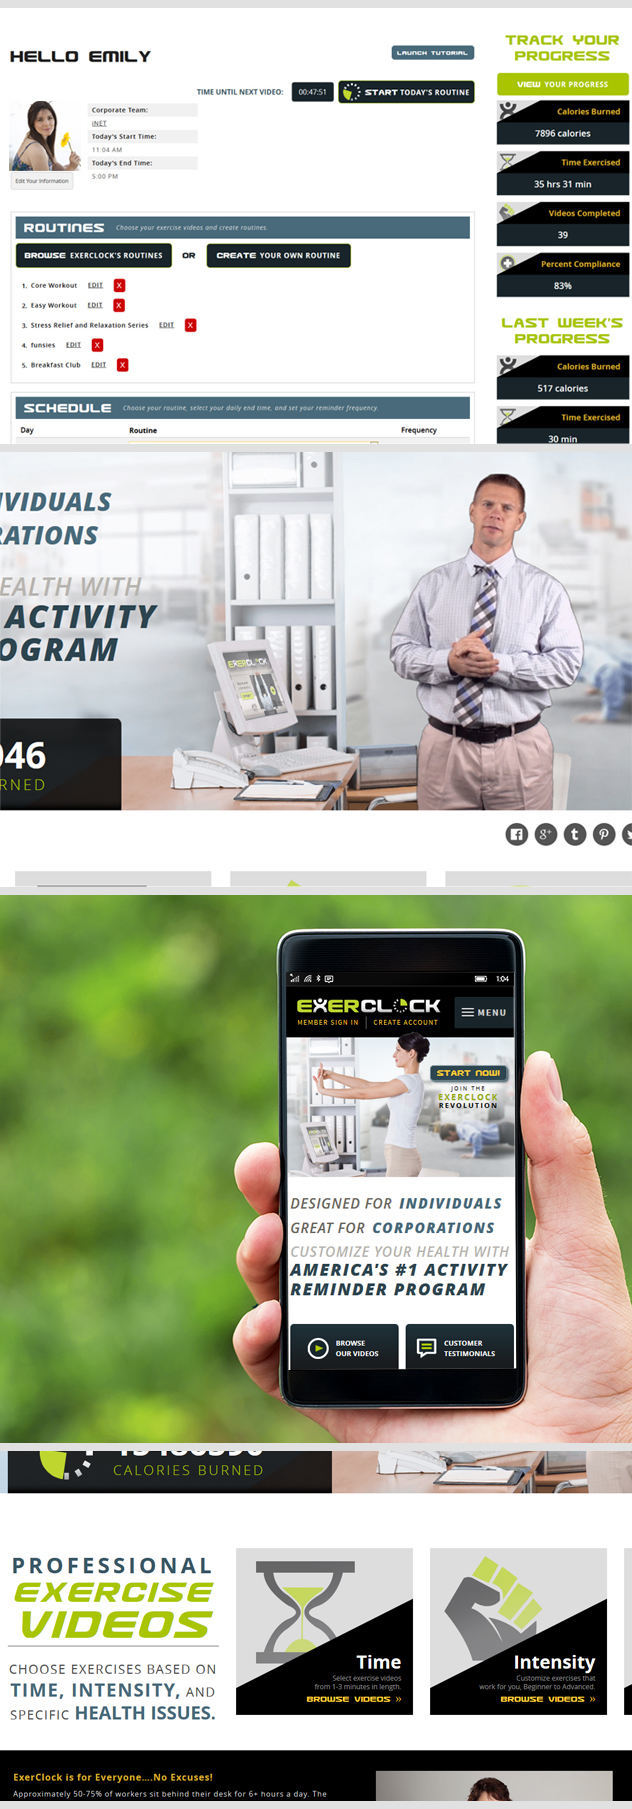 Custom Work Fitness Website Designed by iNET